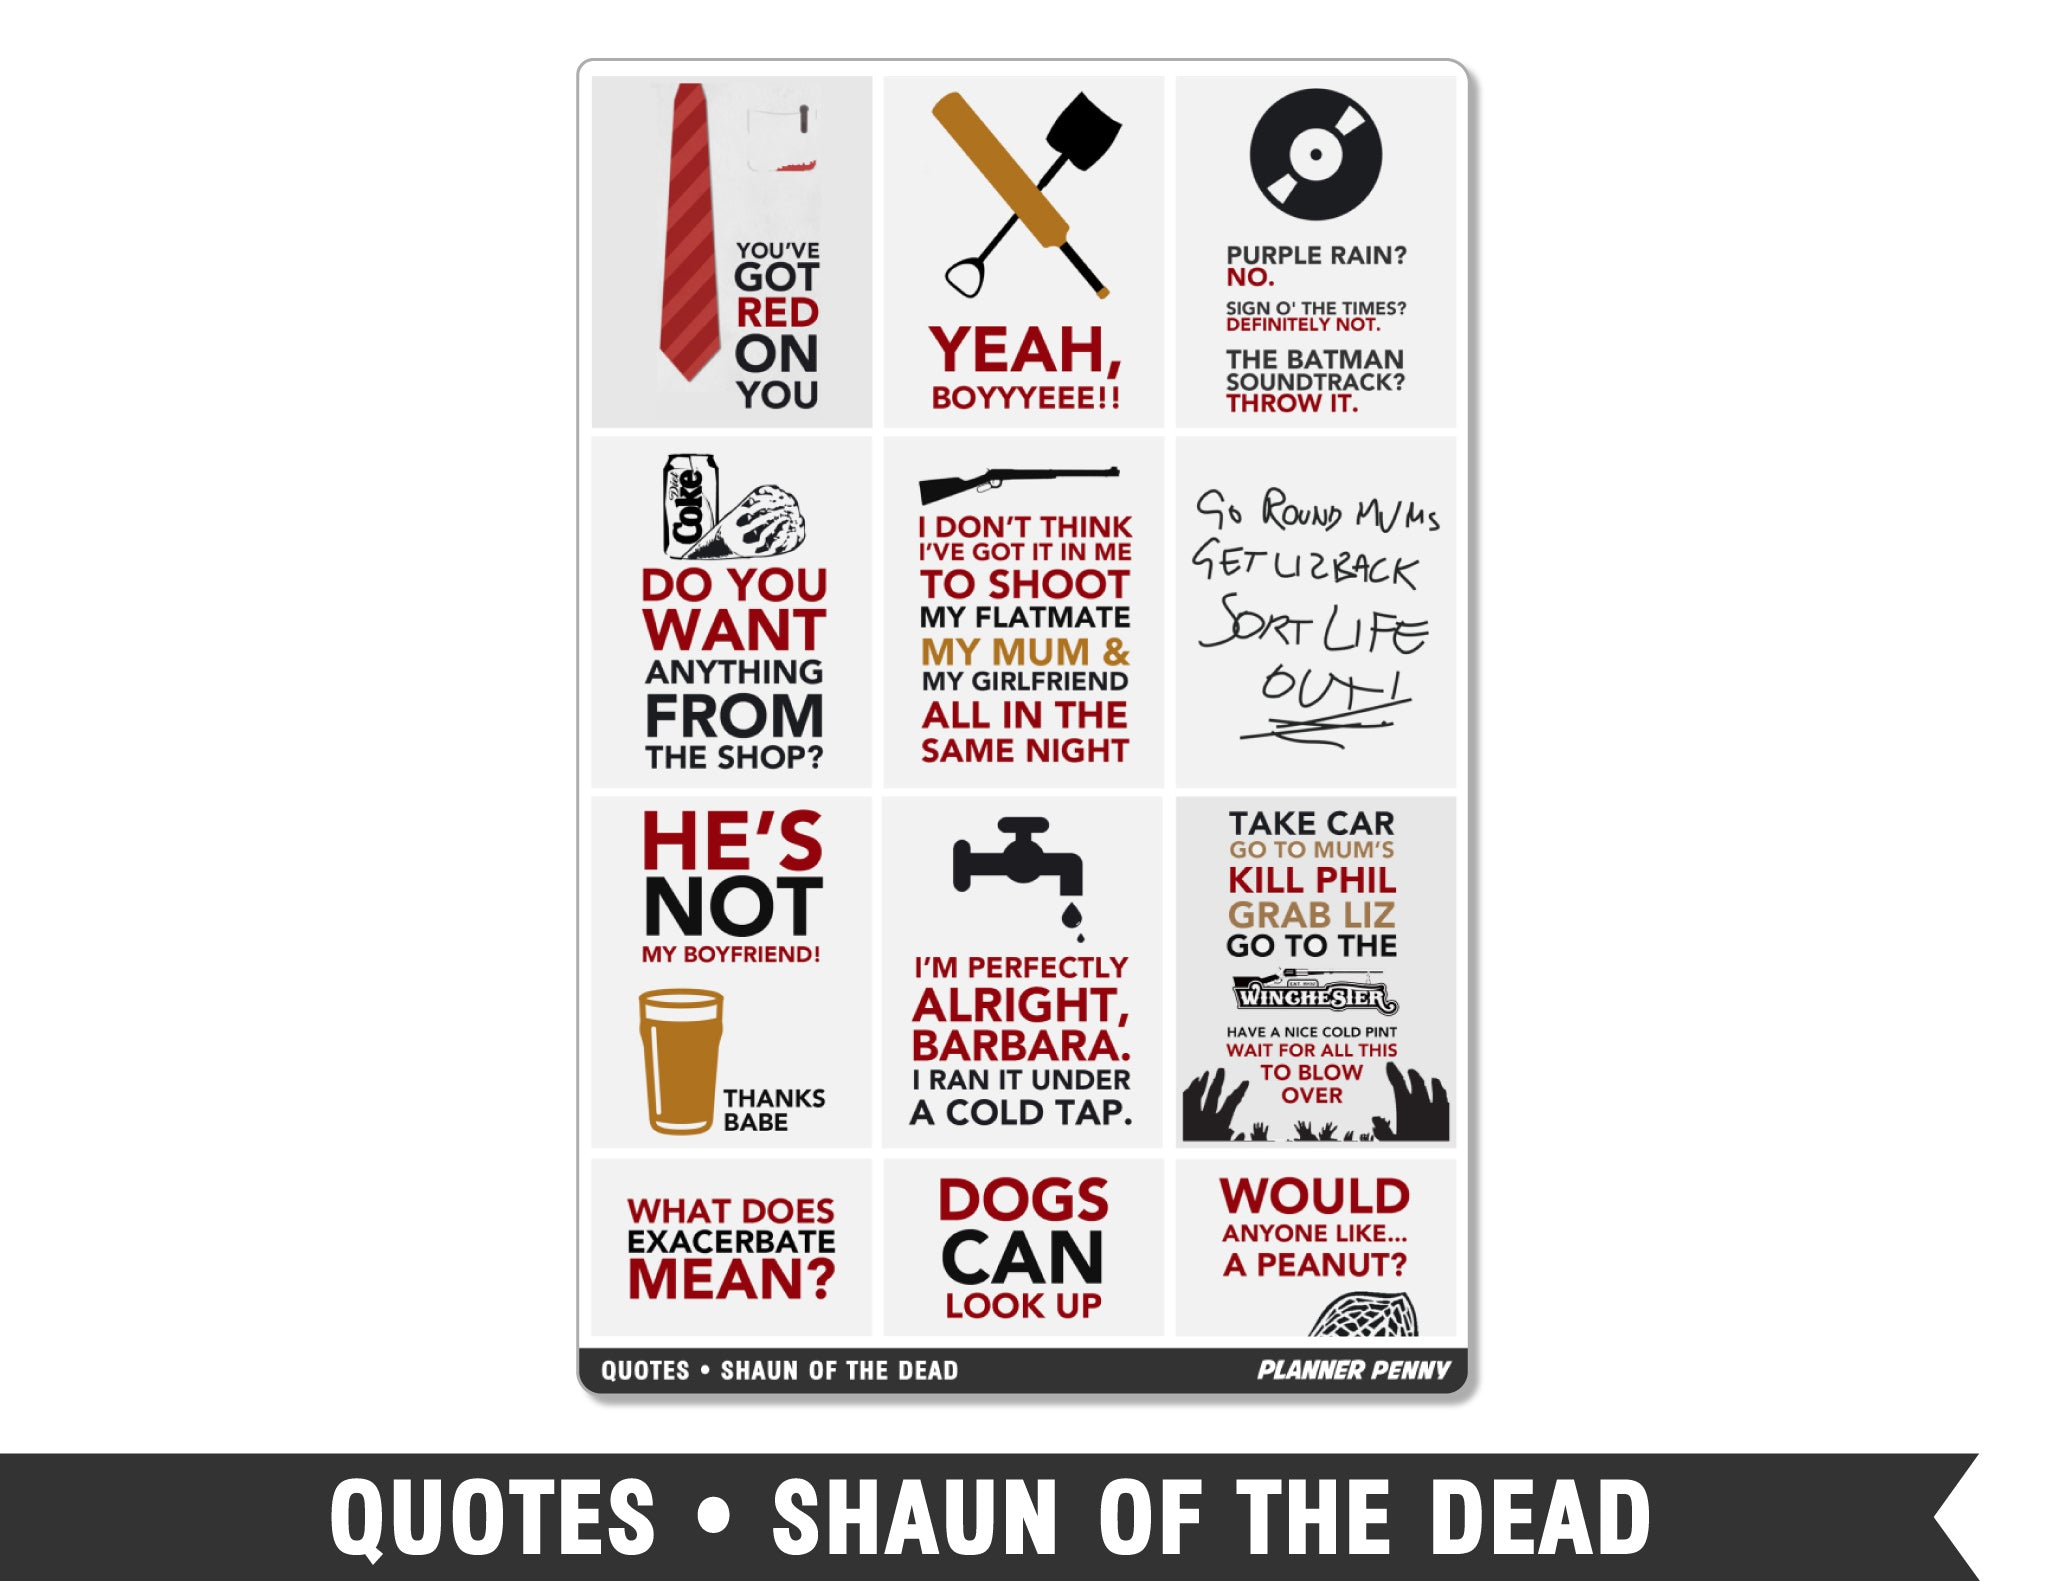 Quotes • Shaun of the Dead Full Box Planner Stickers - Planner Penny